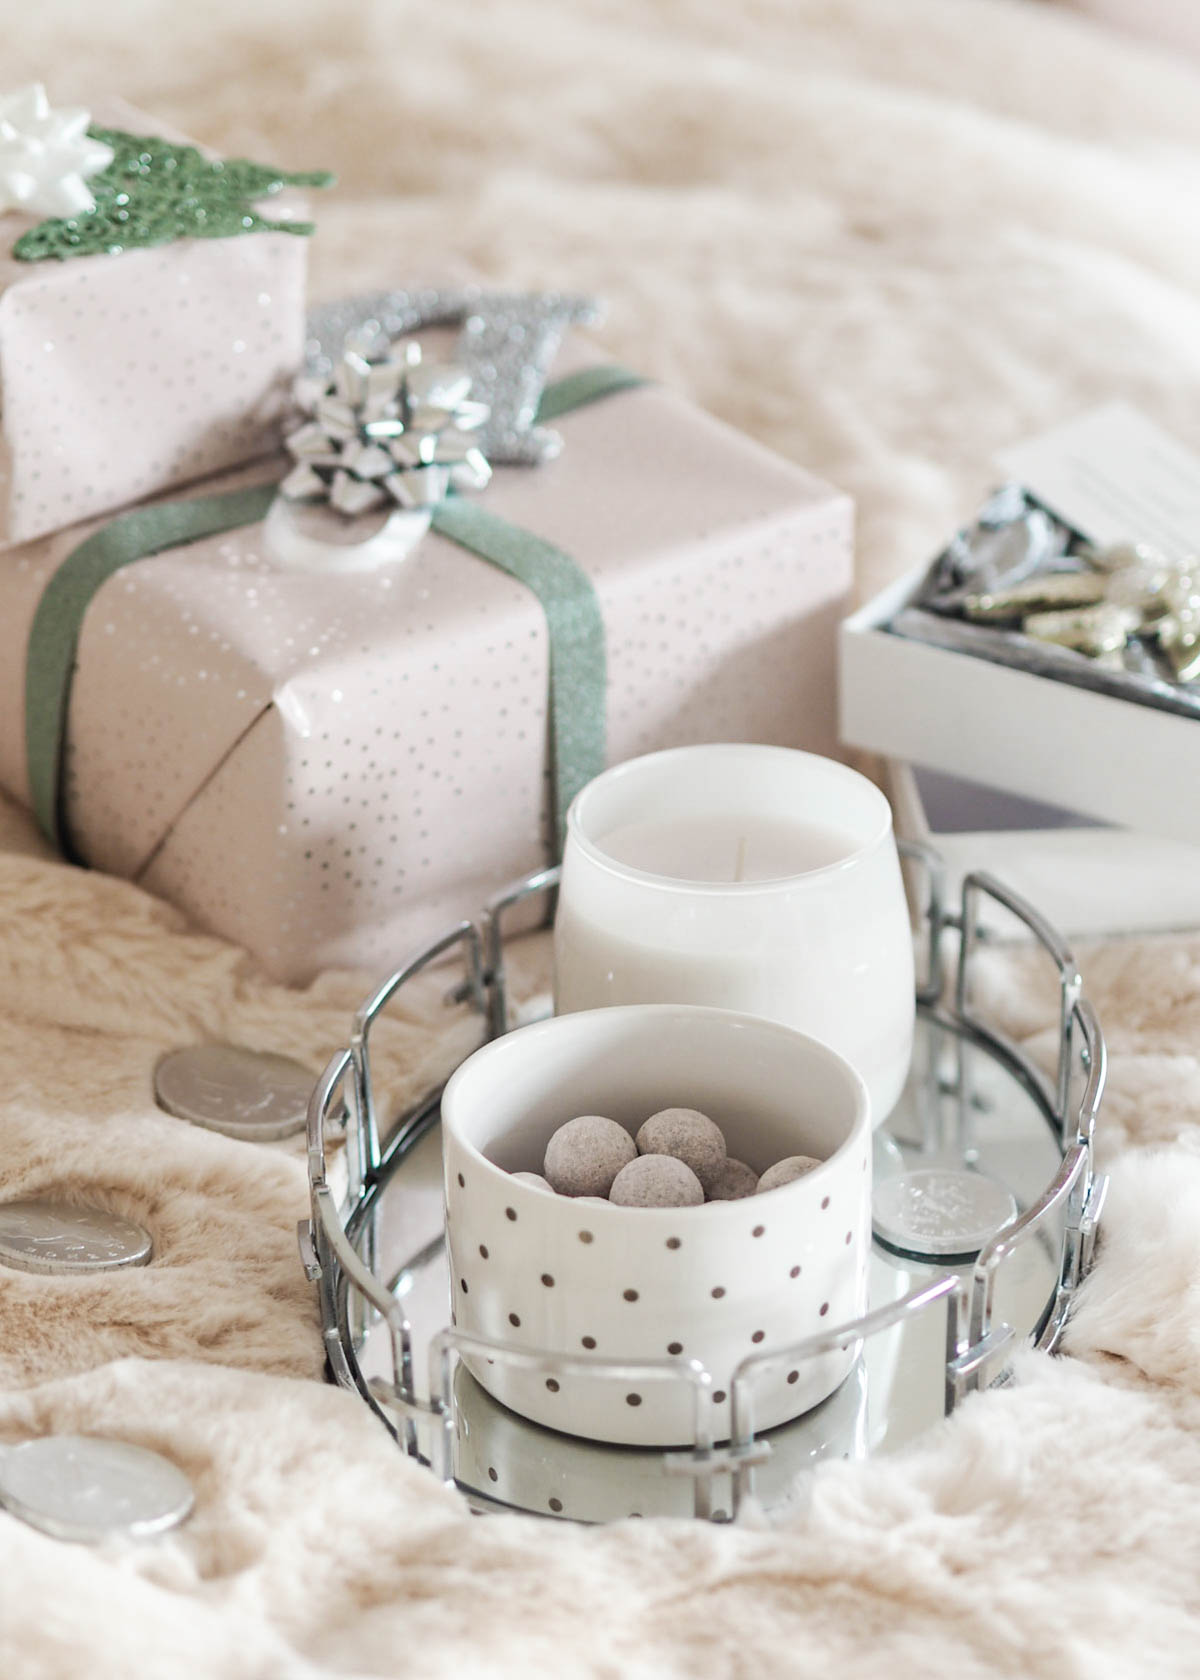 How to style your house with Amara's Winter Blush Christmas collection including pastel decorations, luxe Christmas trees & velvet stockings. Read on to discover more.